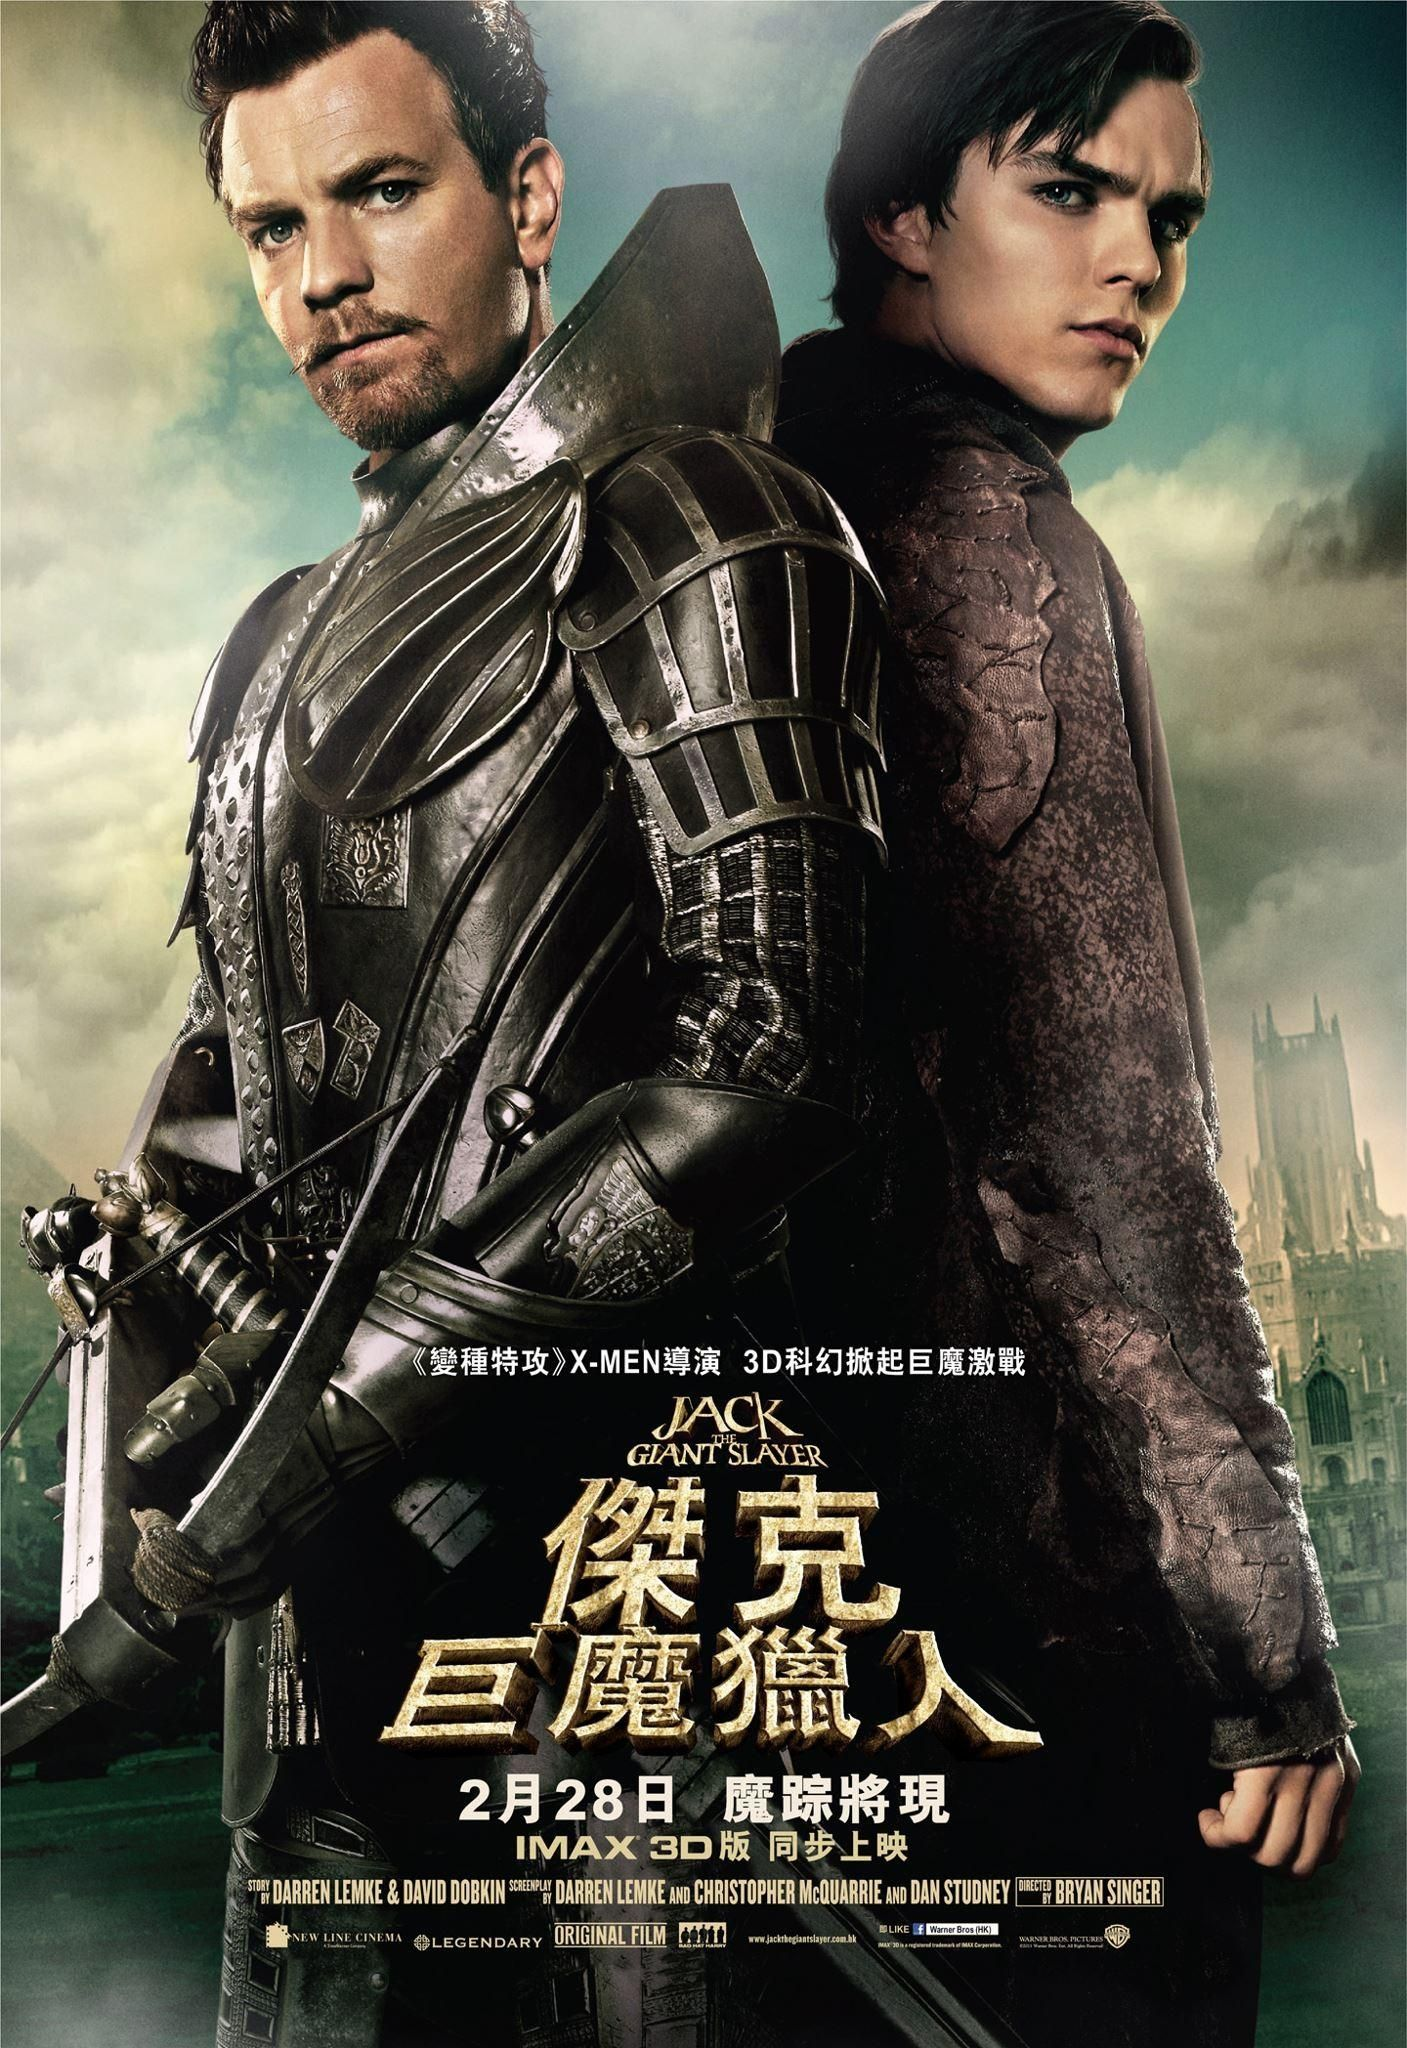 Http Www Kinomania Ru Images Posters 139290 Jpg With Images Jack The Giant Slayer Adventure Movie Tv Show Music